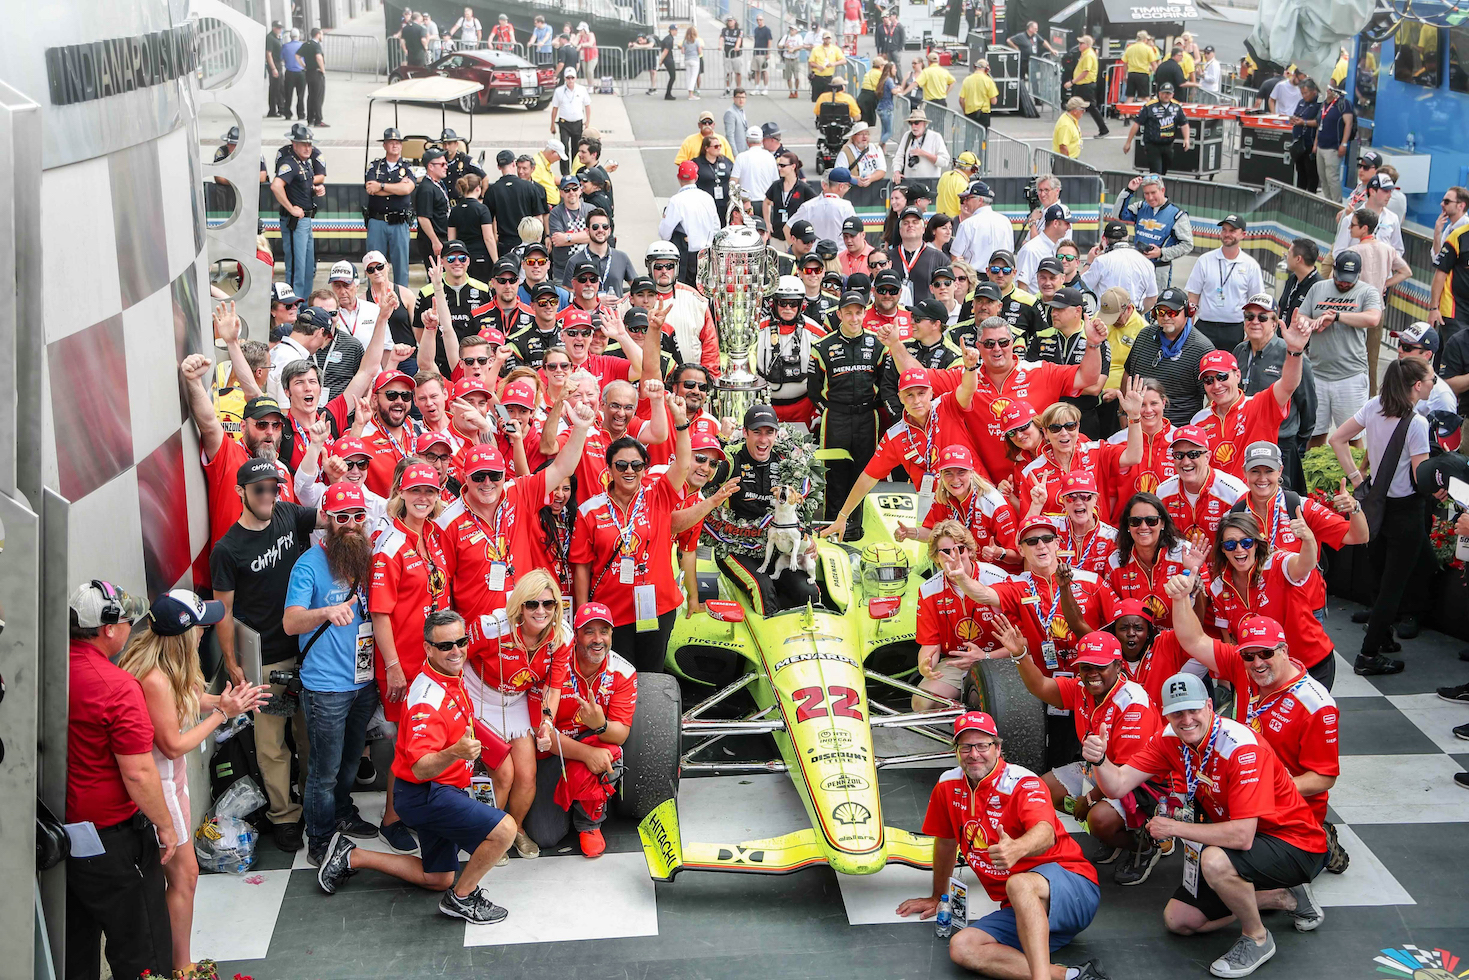 Victory Lane at the Indy 500.